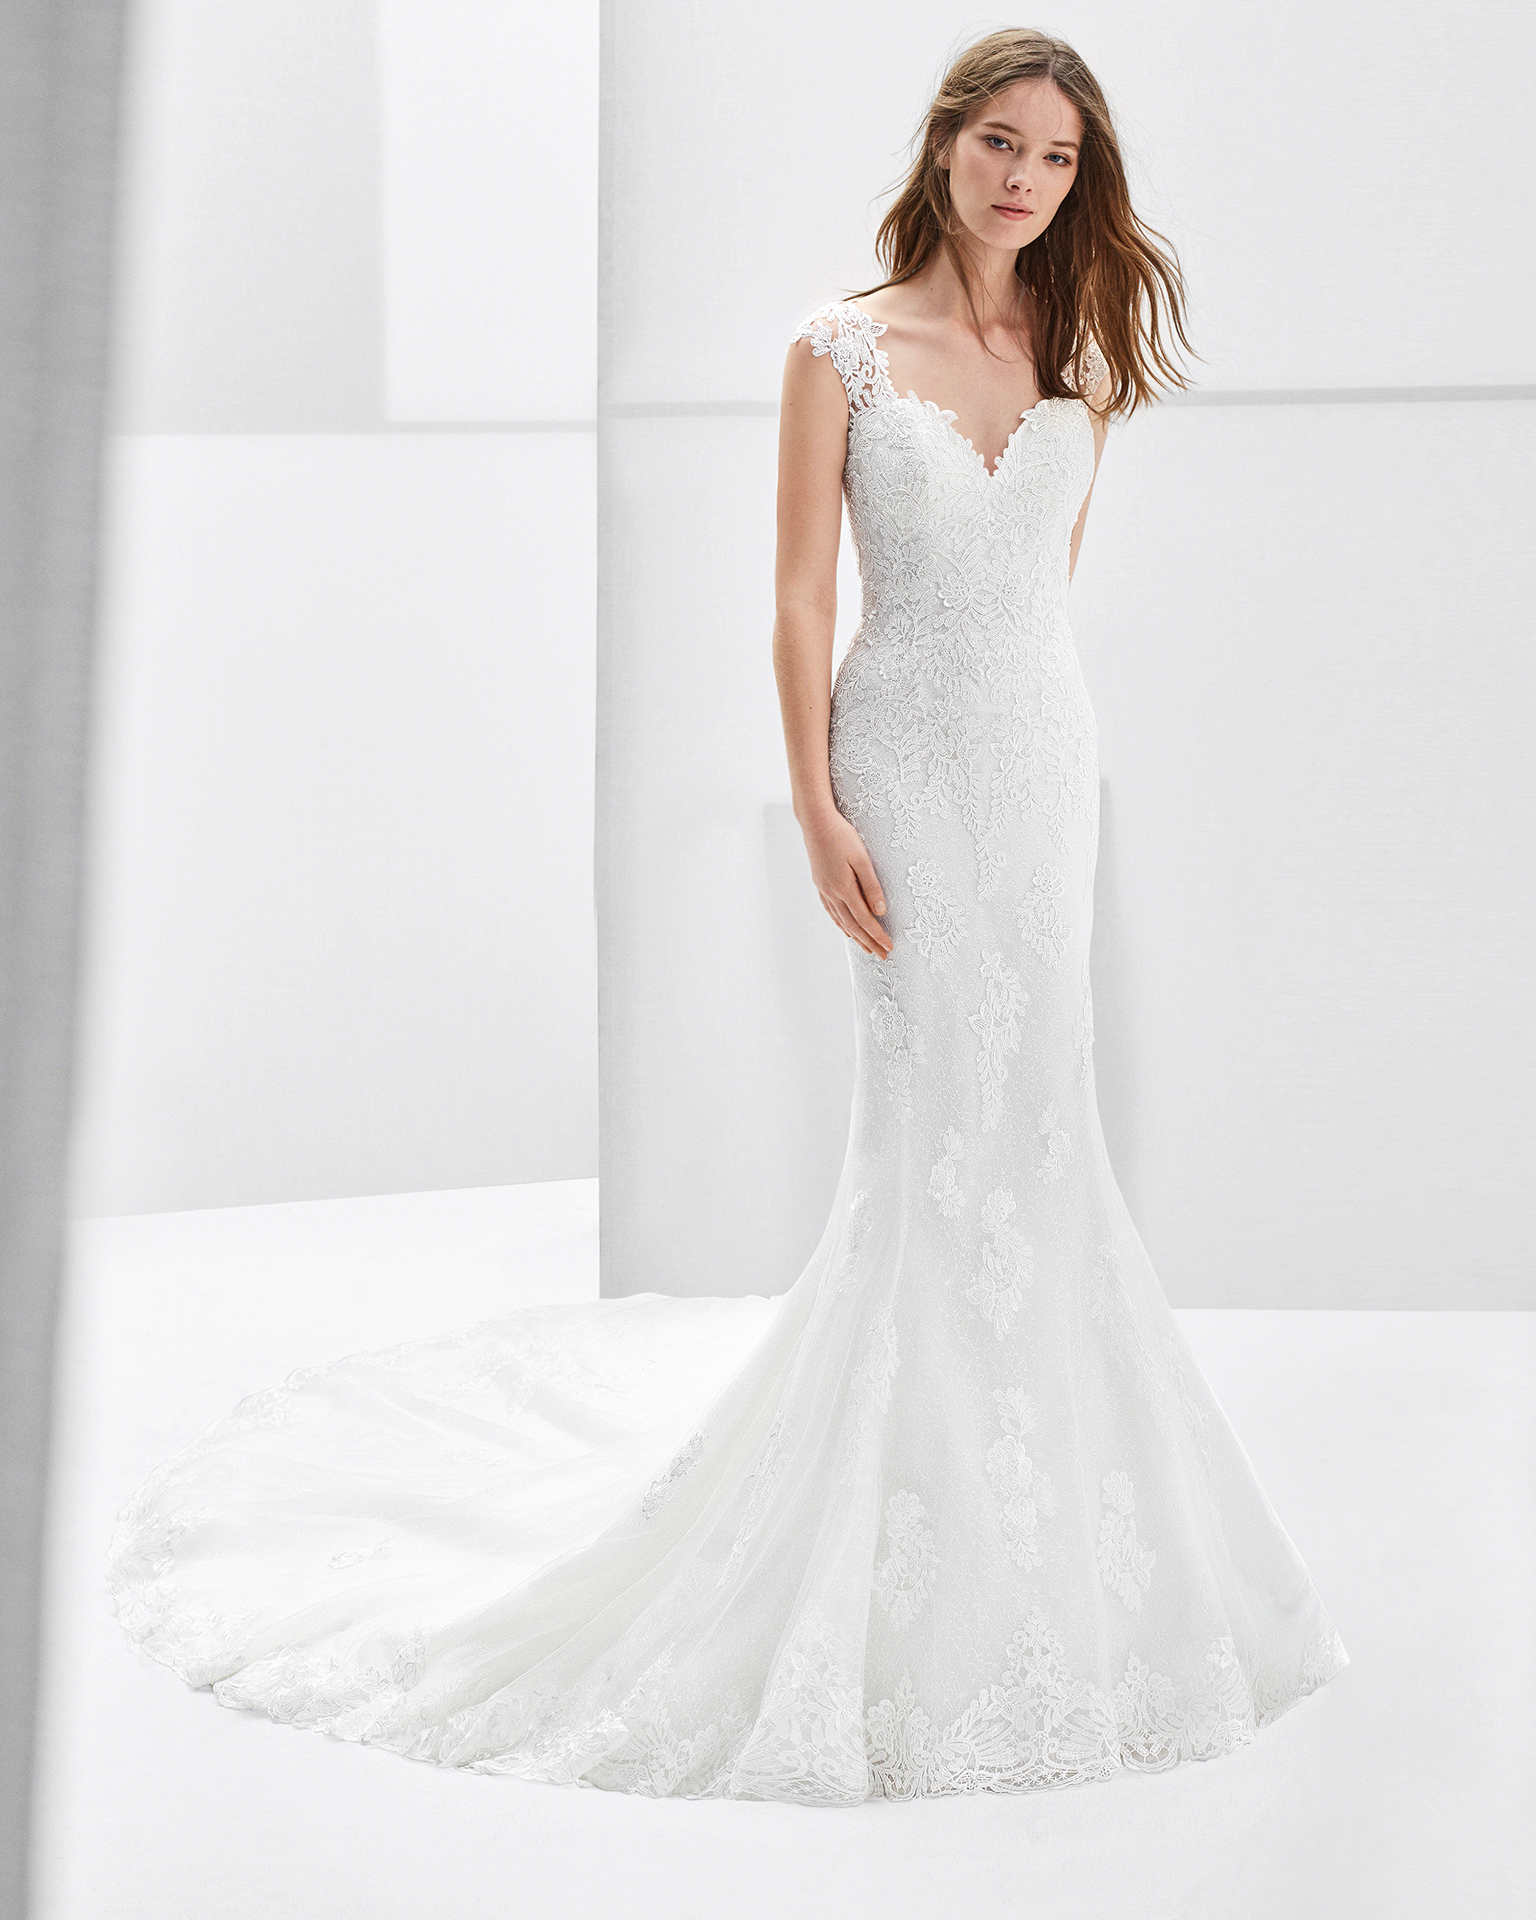 Mermaid-style lace and guipure lace wedding dress with low back and lace appliqués.